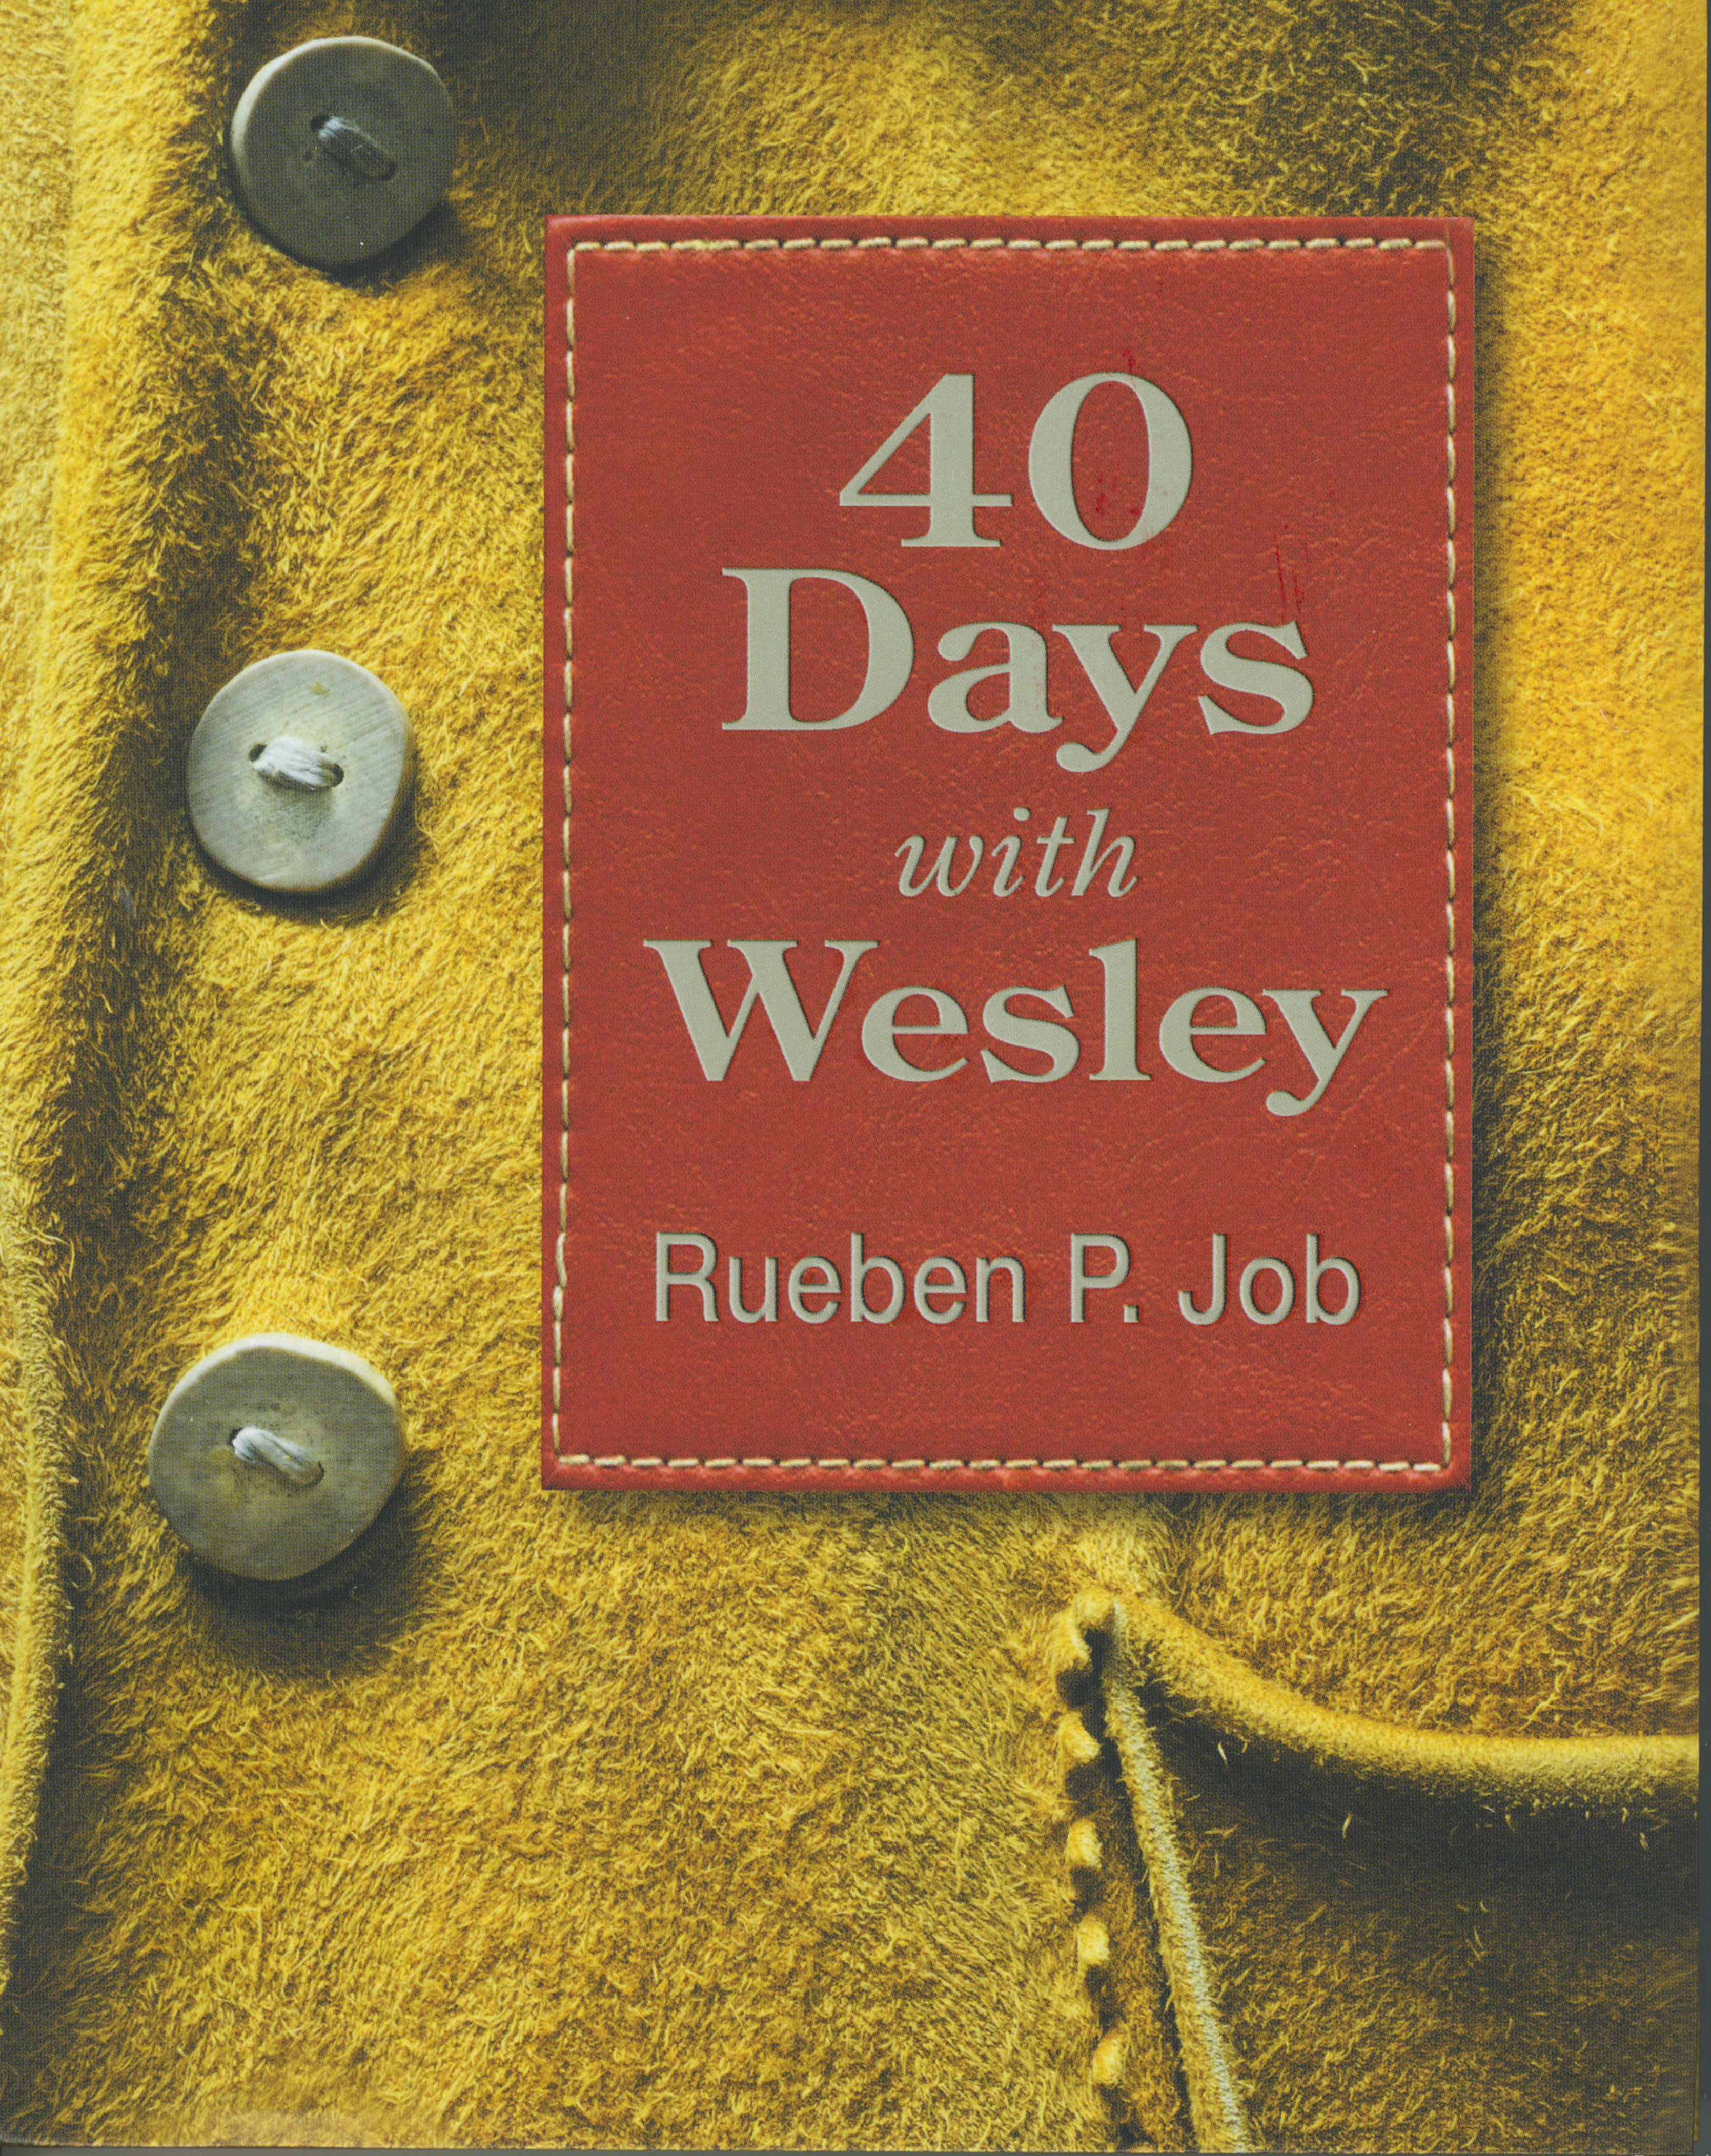 40 Days with Wesley by Reuben P. Job 108-9781501836015